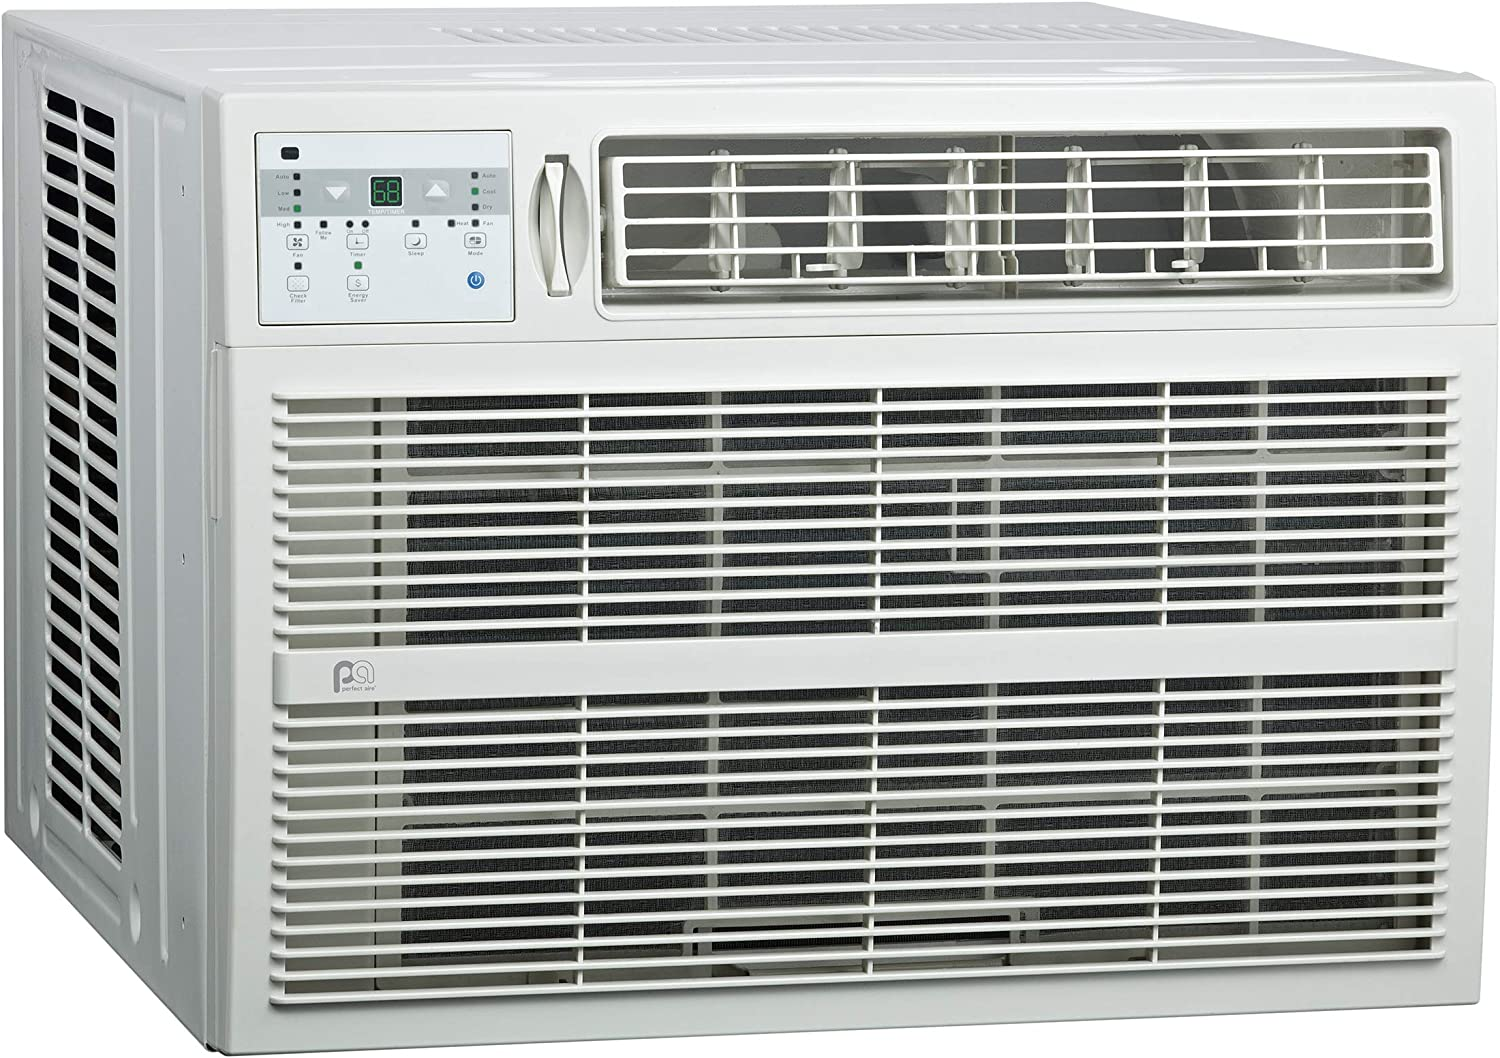 PerfectAire 3PACH18000 18,500/18,200 BTU Window Air Conditioner with Electric Heater, 208/230V, 700-1,000 Sq. Ft. Coverage